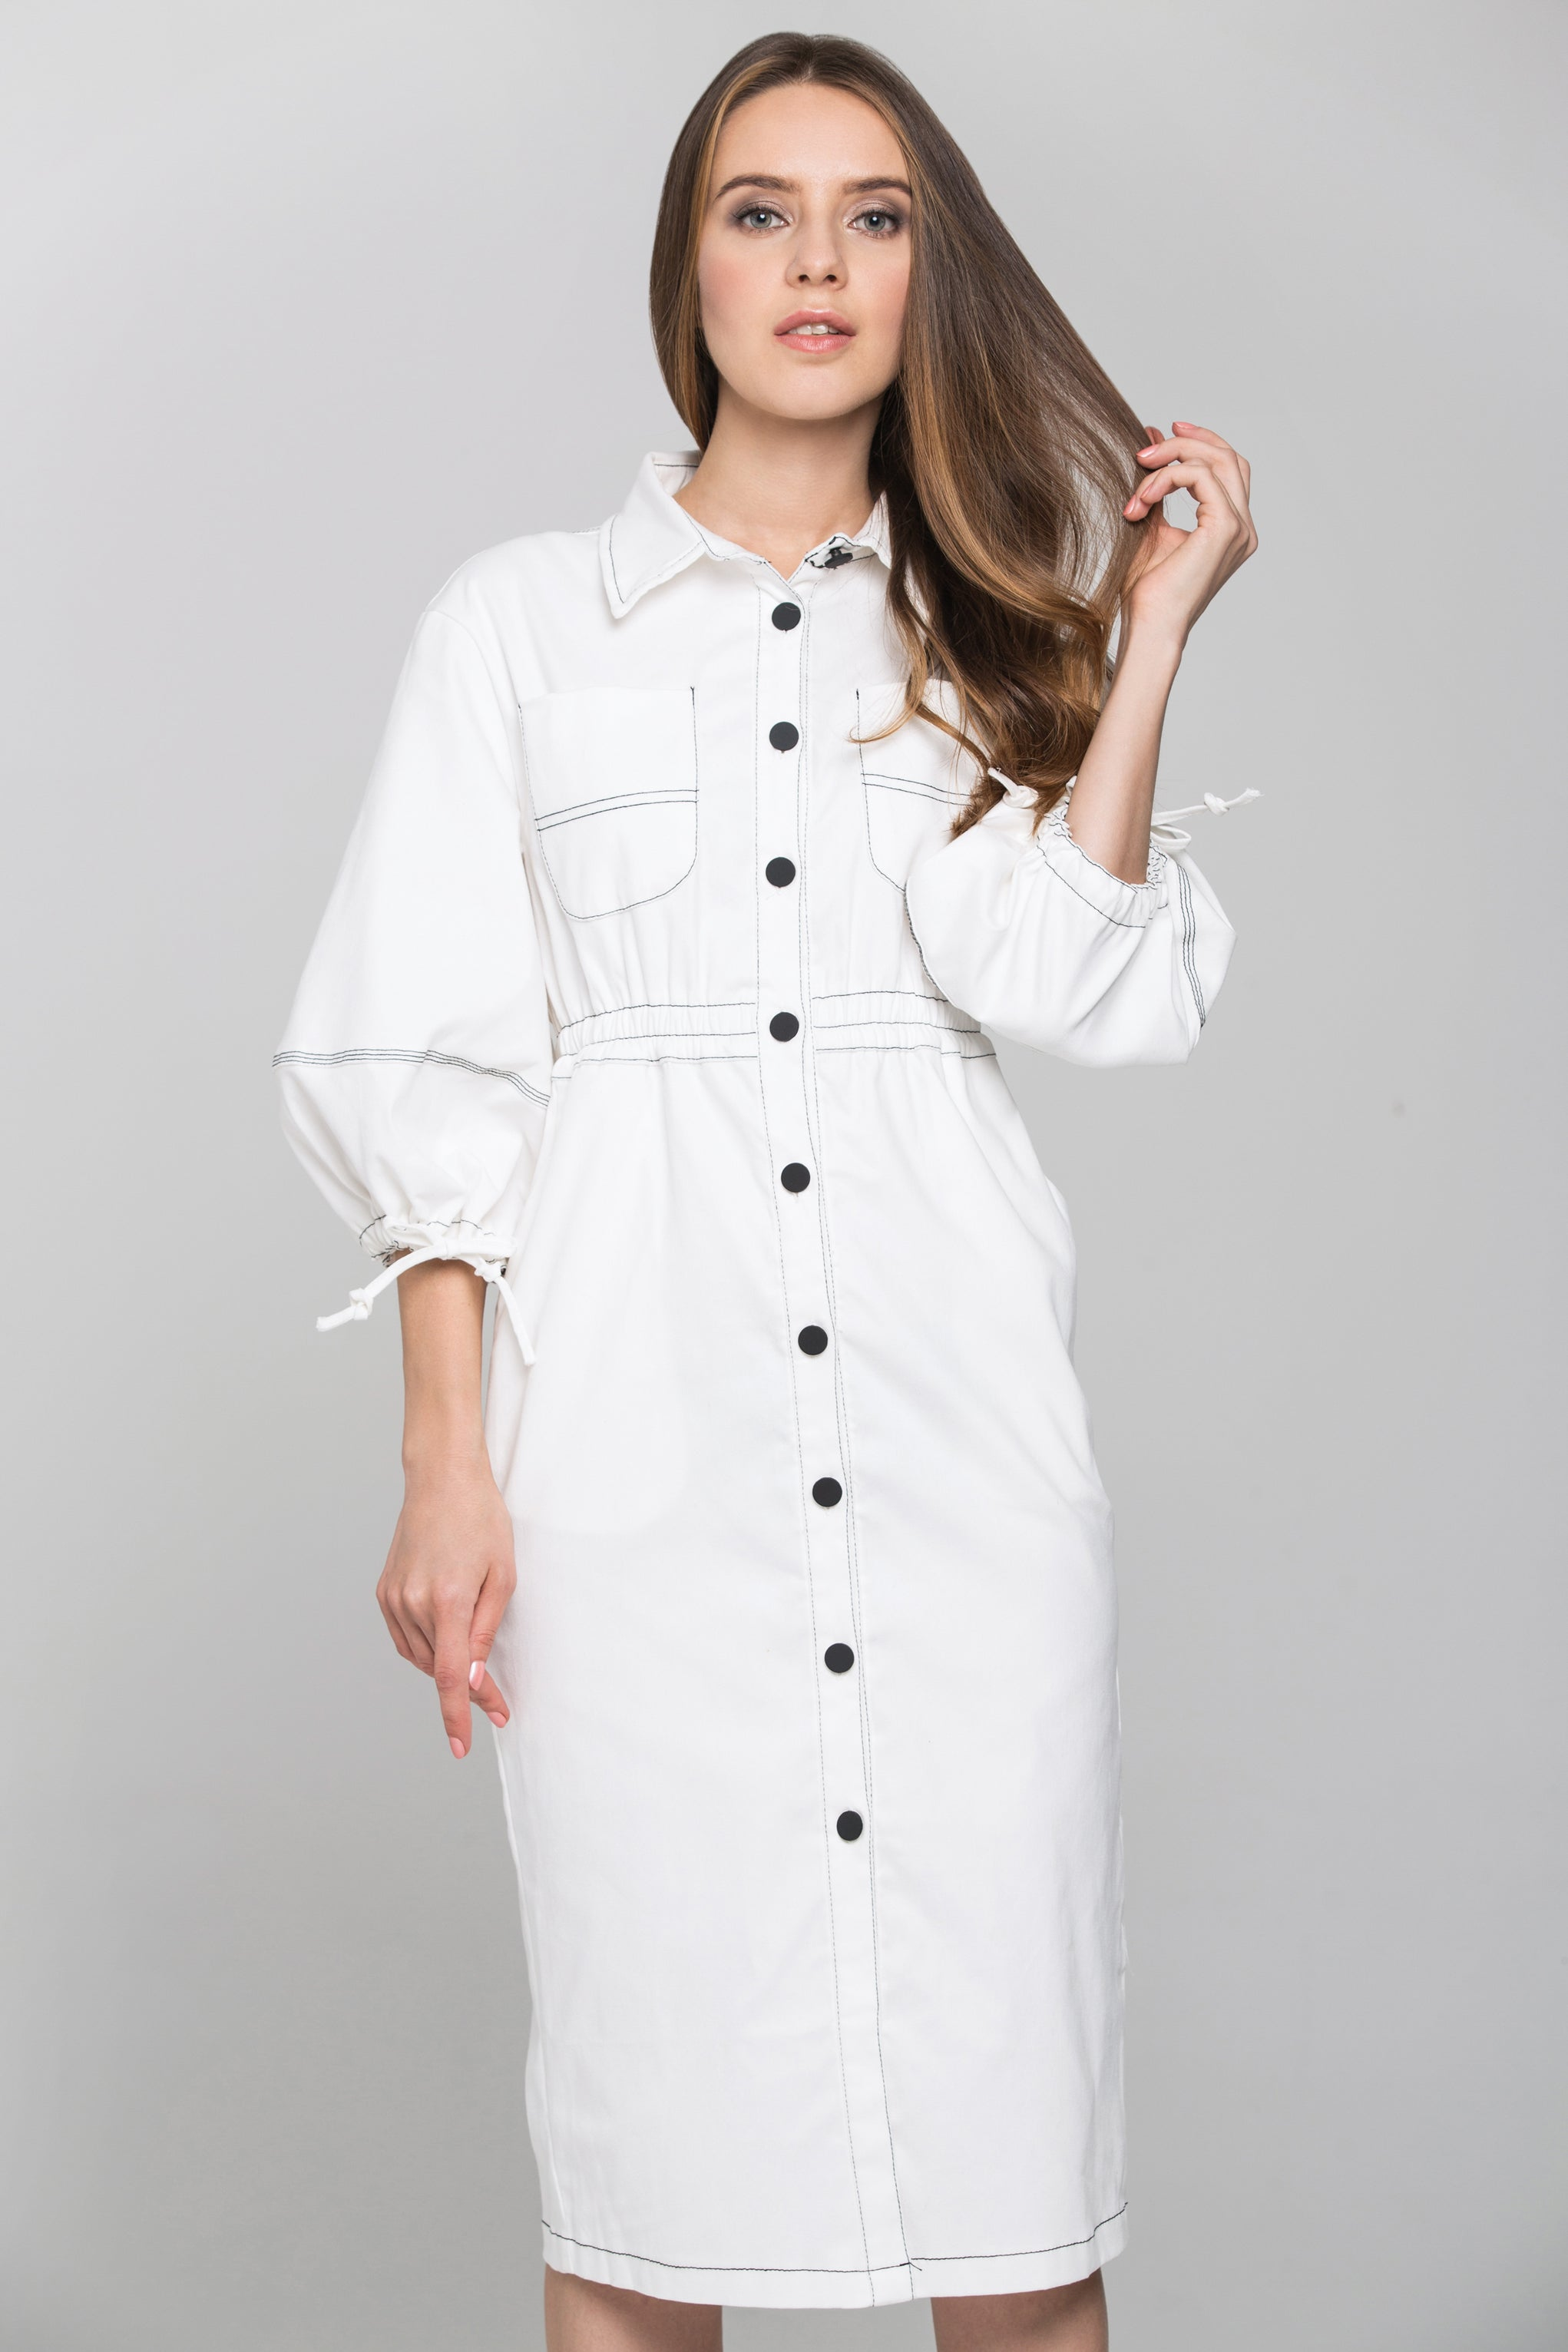 ee4e38625bab White and Black Contrast stitch Puff Sleeves Midi Shirt Dress – OwnTheLooks